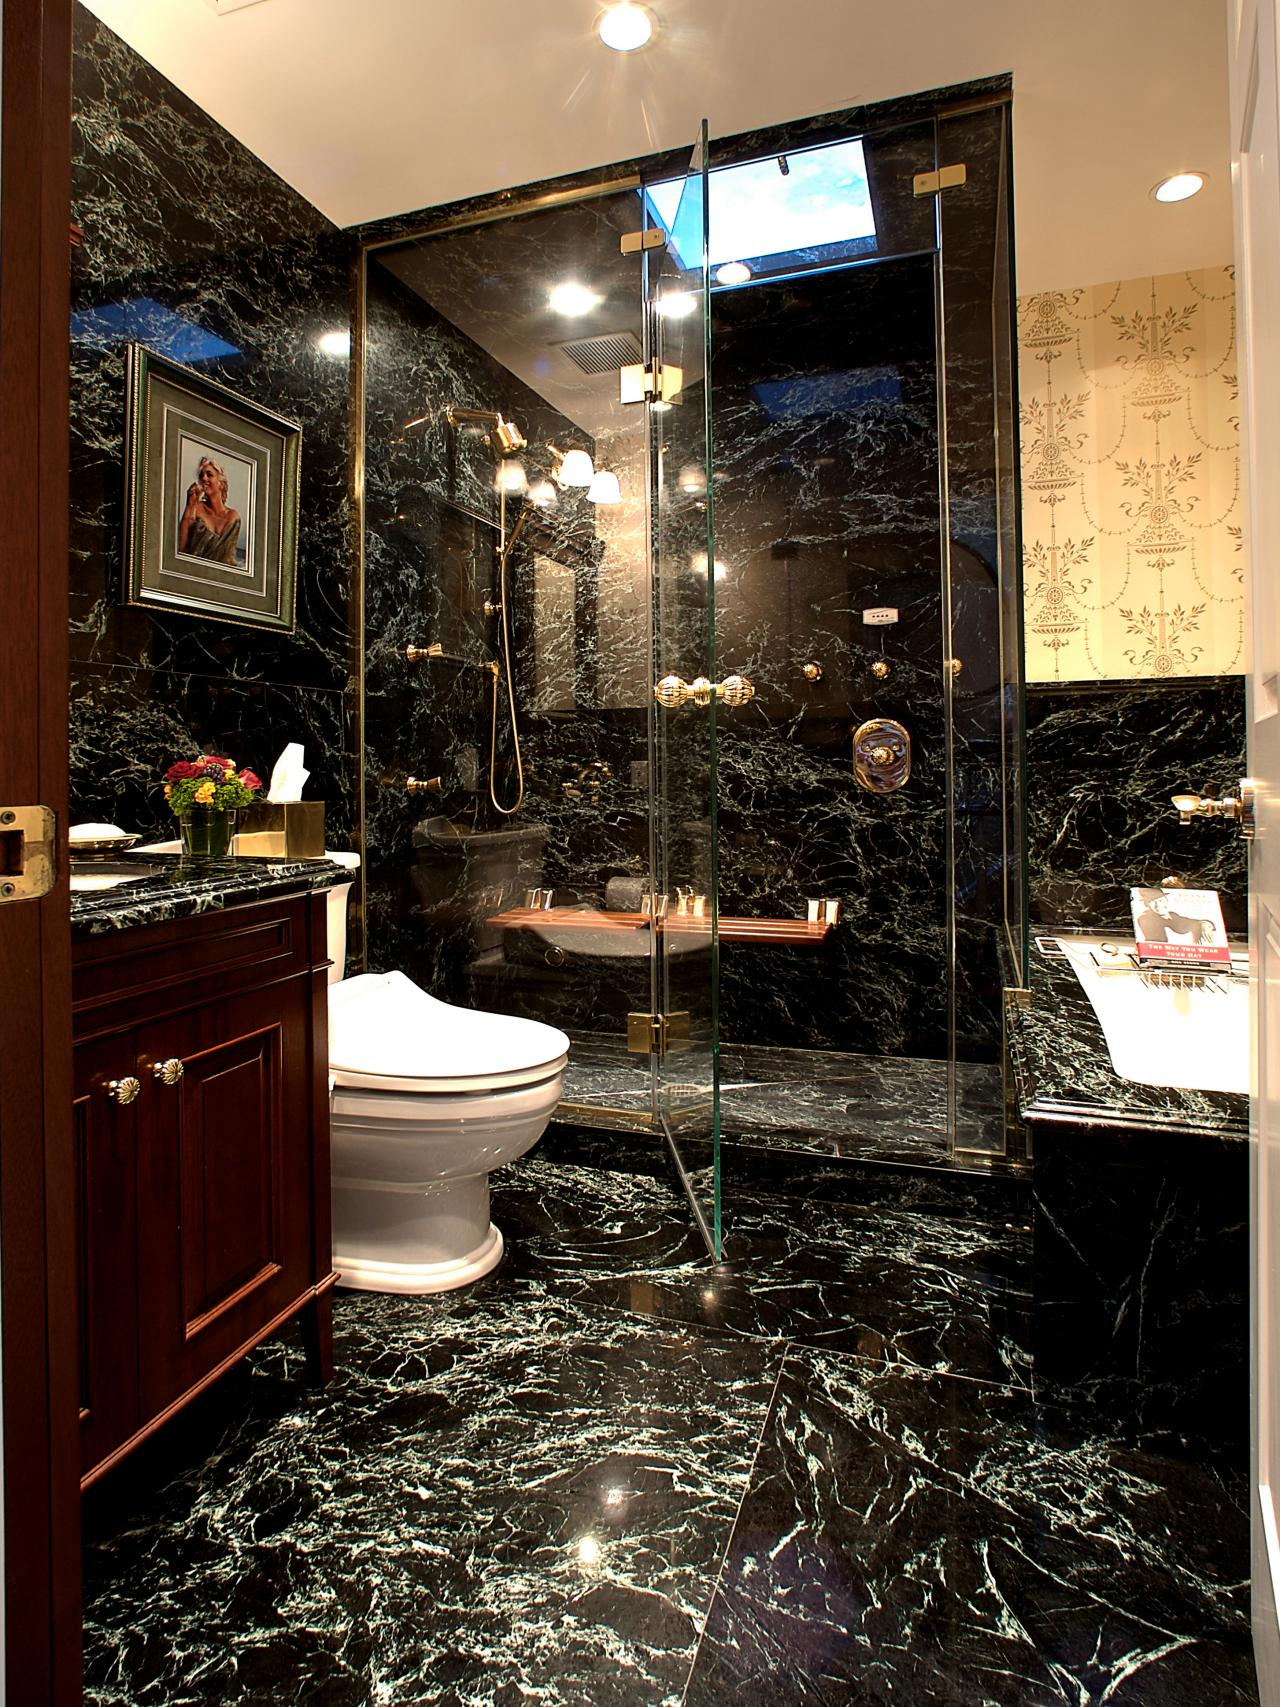 Marble Bathrooms We Re Swooning Over Hgtv S Decorating Design Blog Hgtv